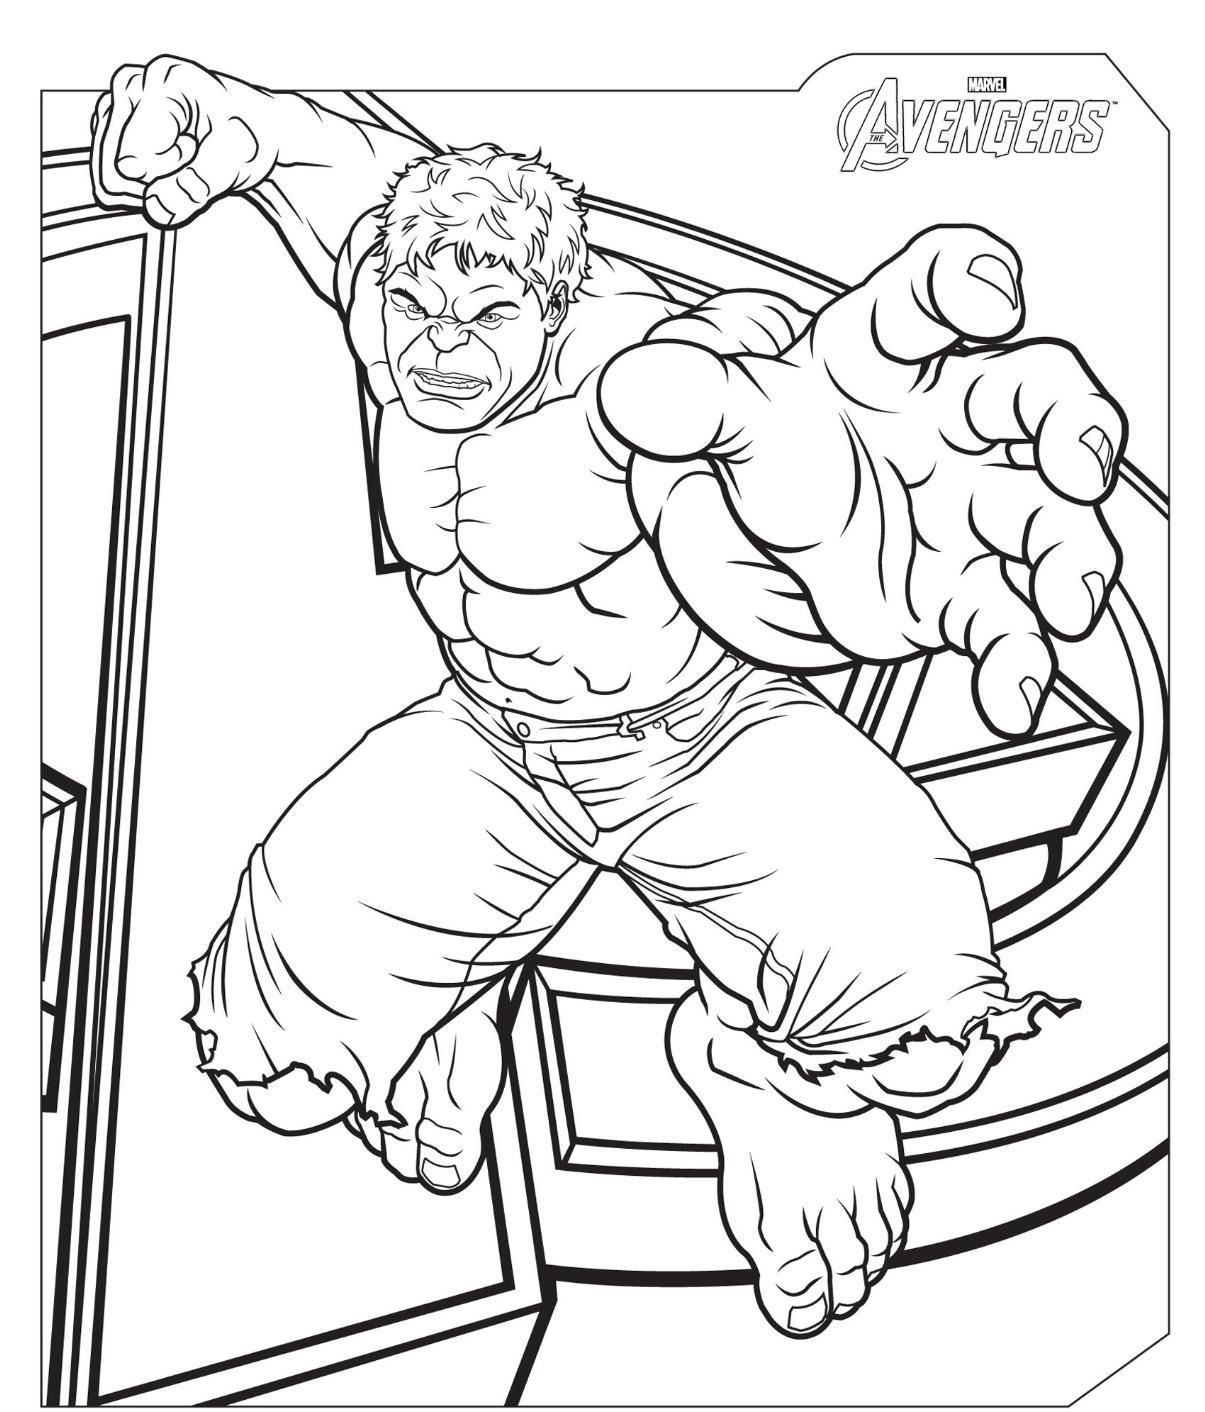 Download and Print the avengers hulk coloring pages | Superhero ...